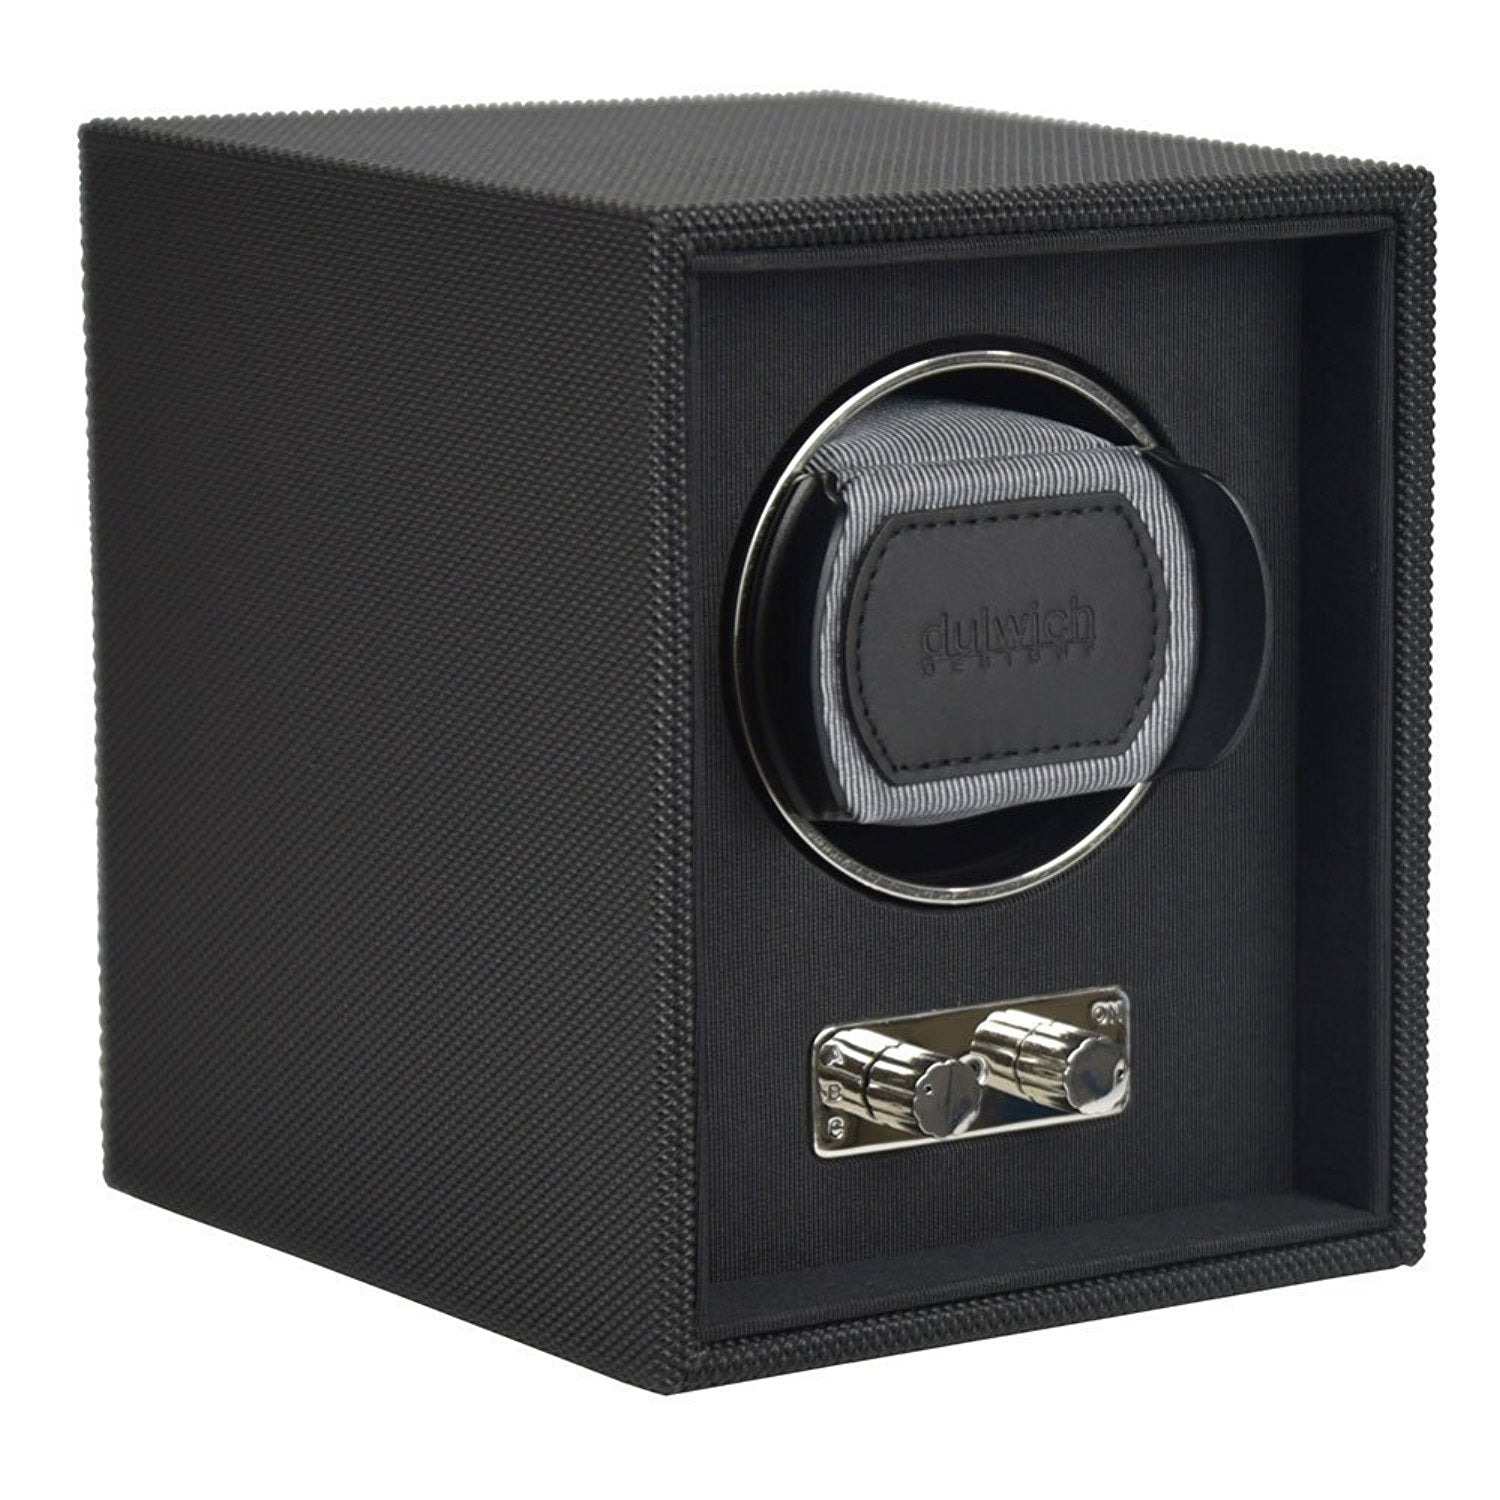 Goodwood Dulwich Grey Single Watch rotator Watch Winder